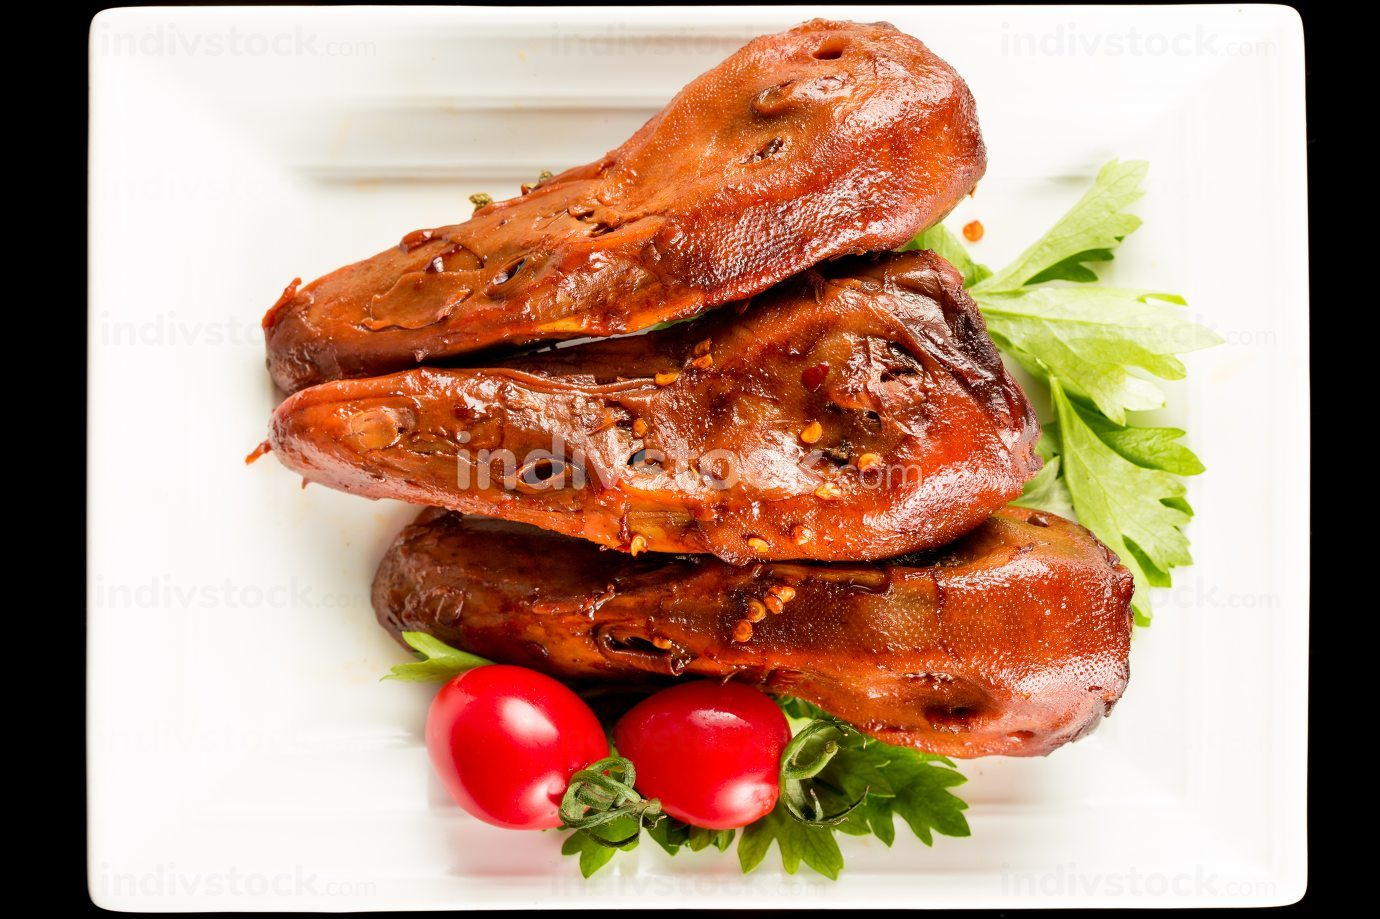 Braised duck heads, Chinese cuisine.